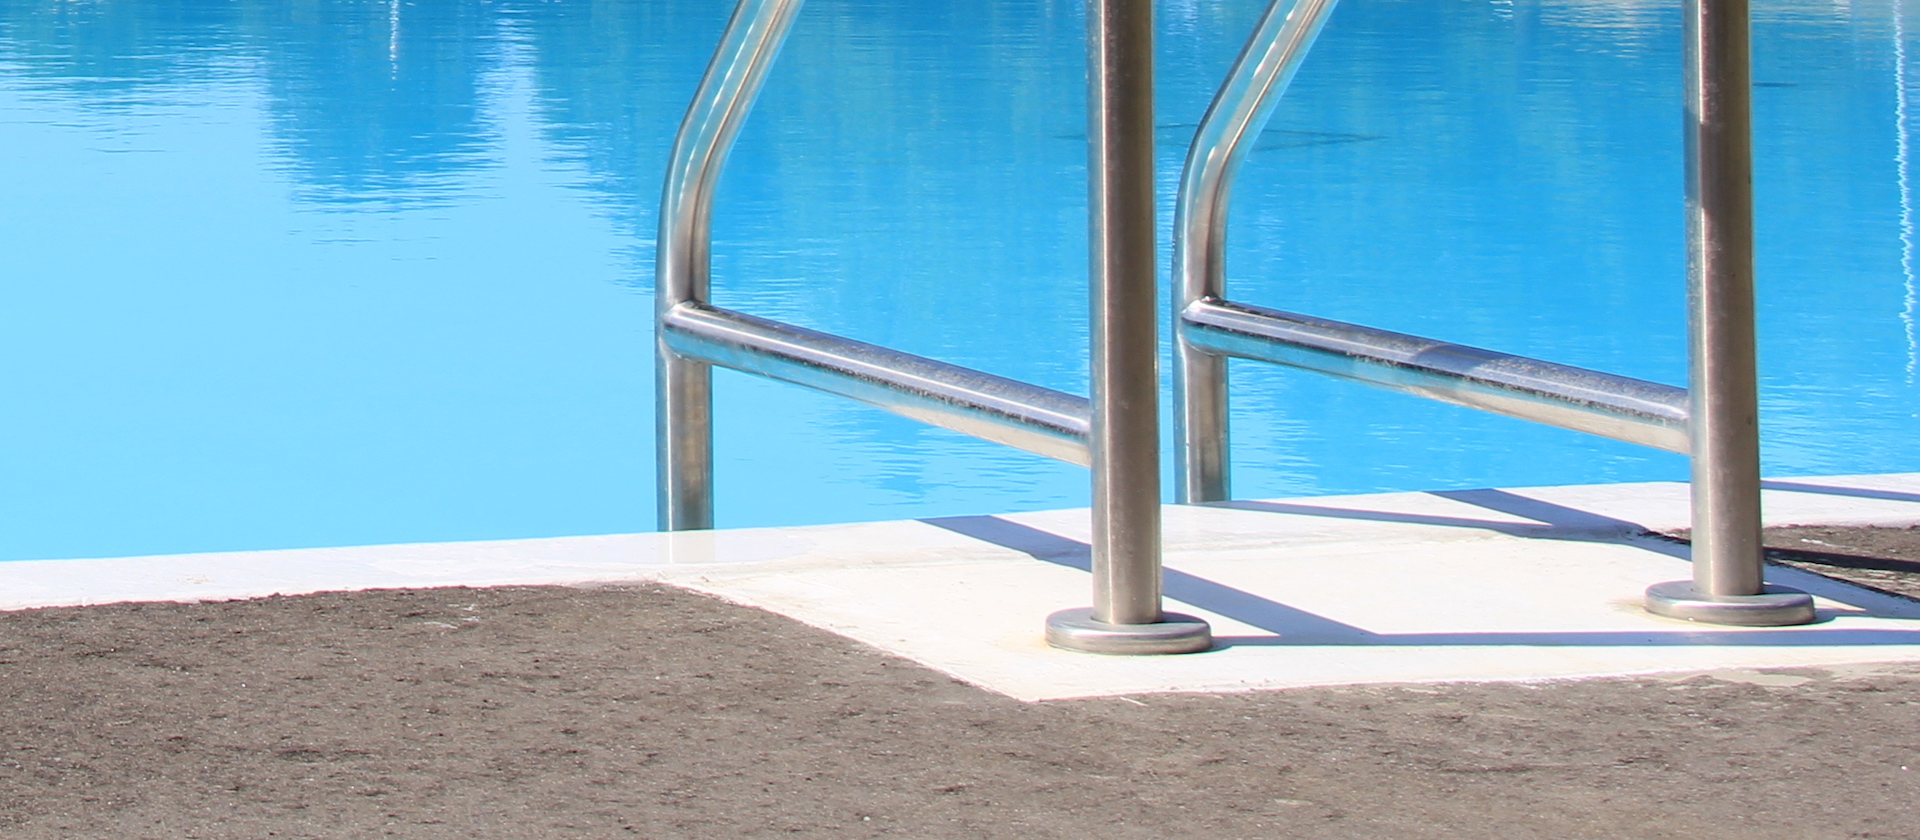 TRCA Planning and Permits POOLS